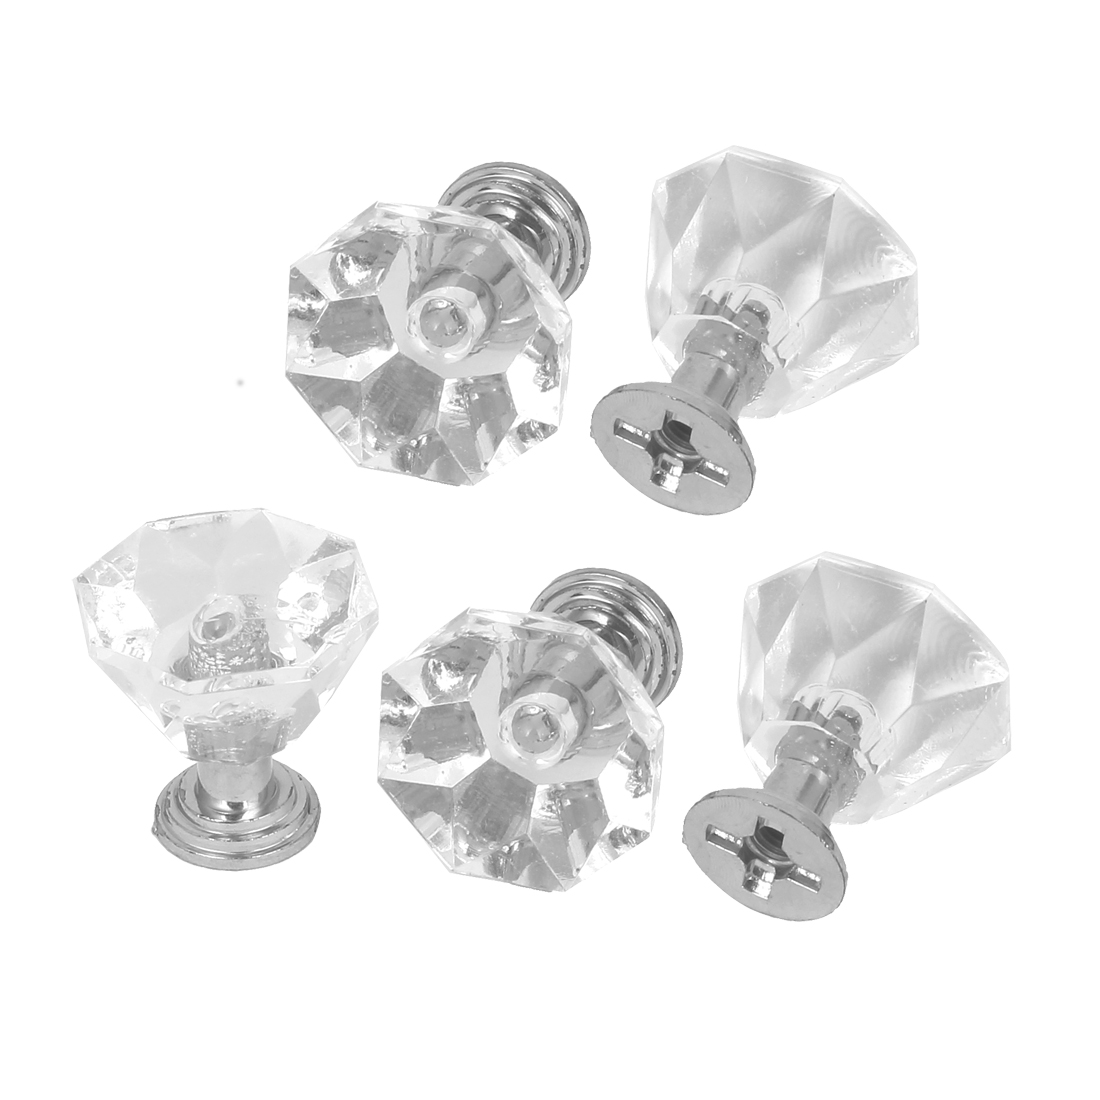 Drawer Cupboard Cabinet Door Crystal Pull Handles Clear 25mm Long 5pcs